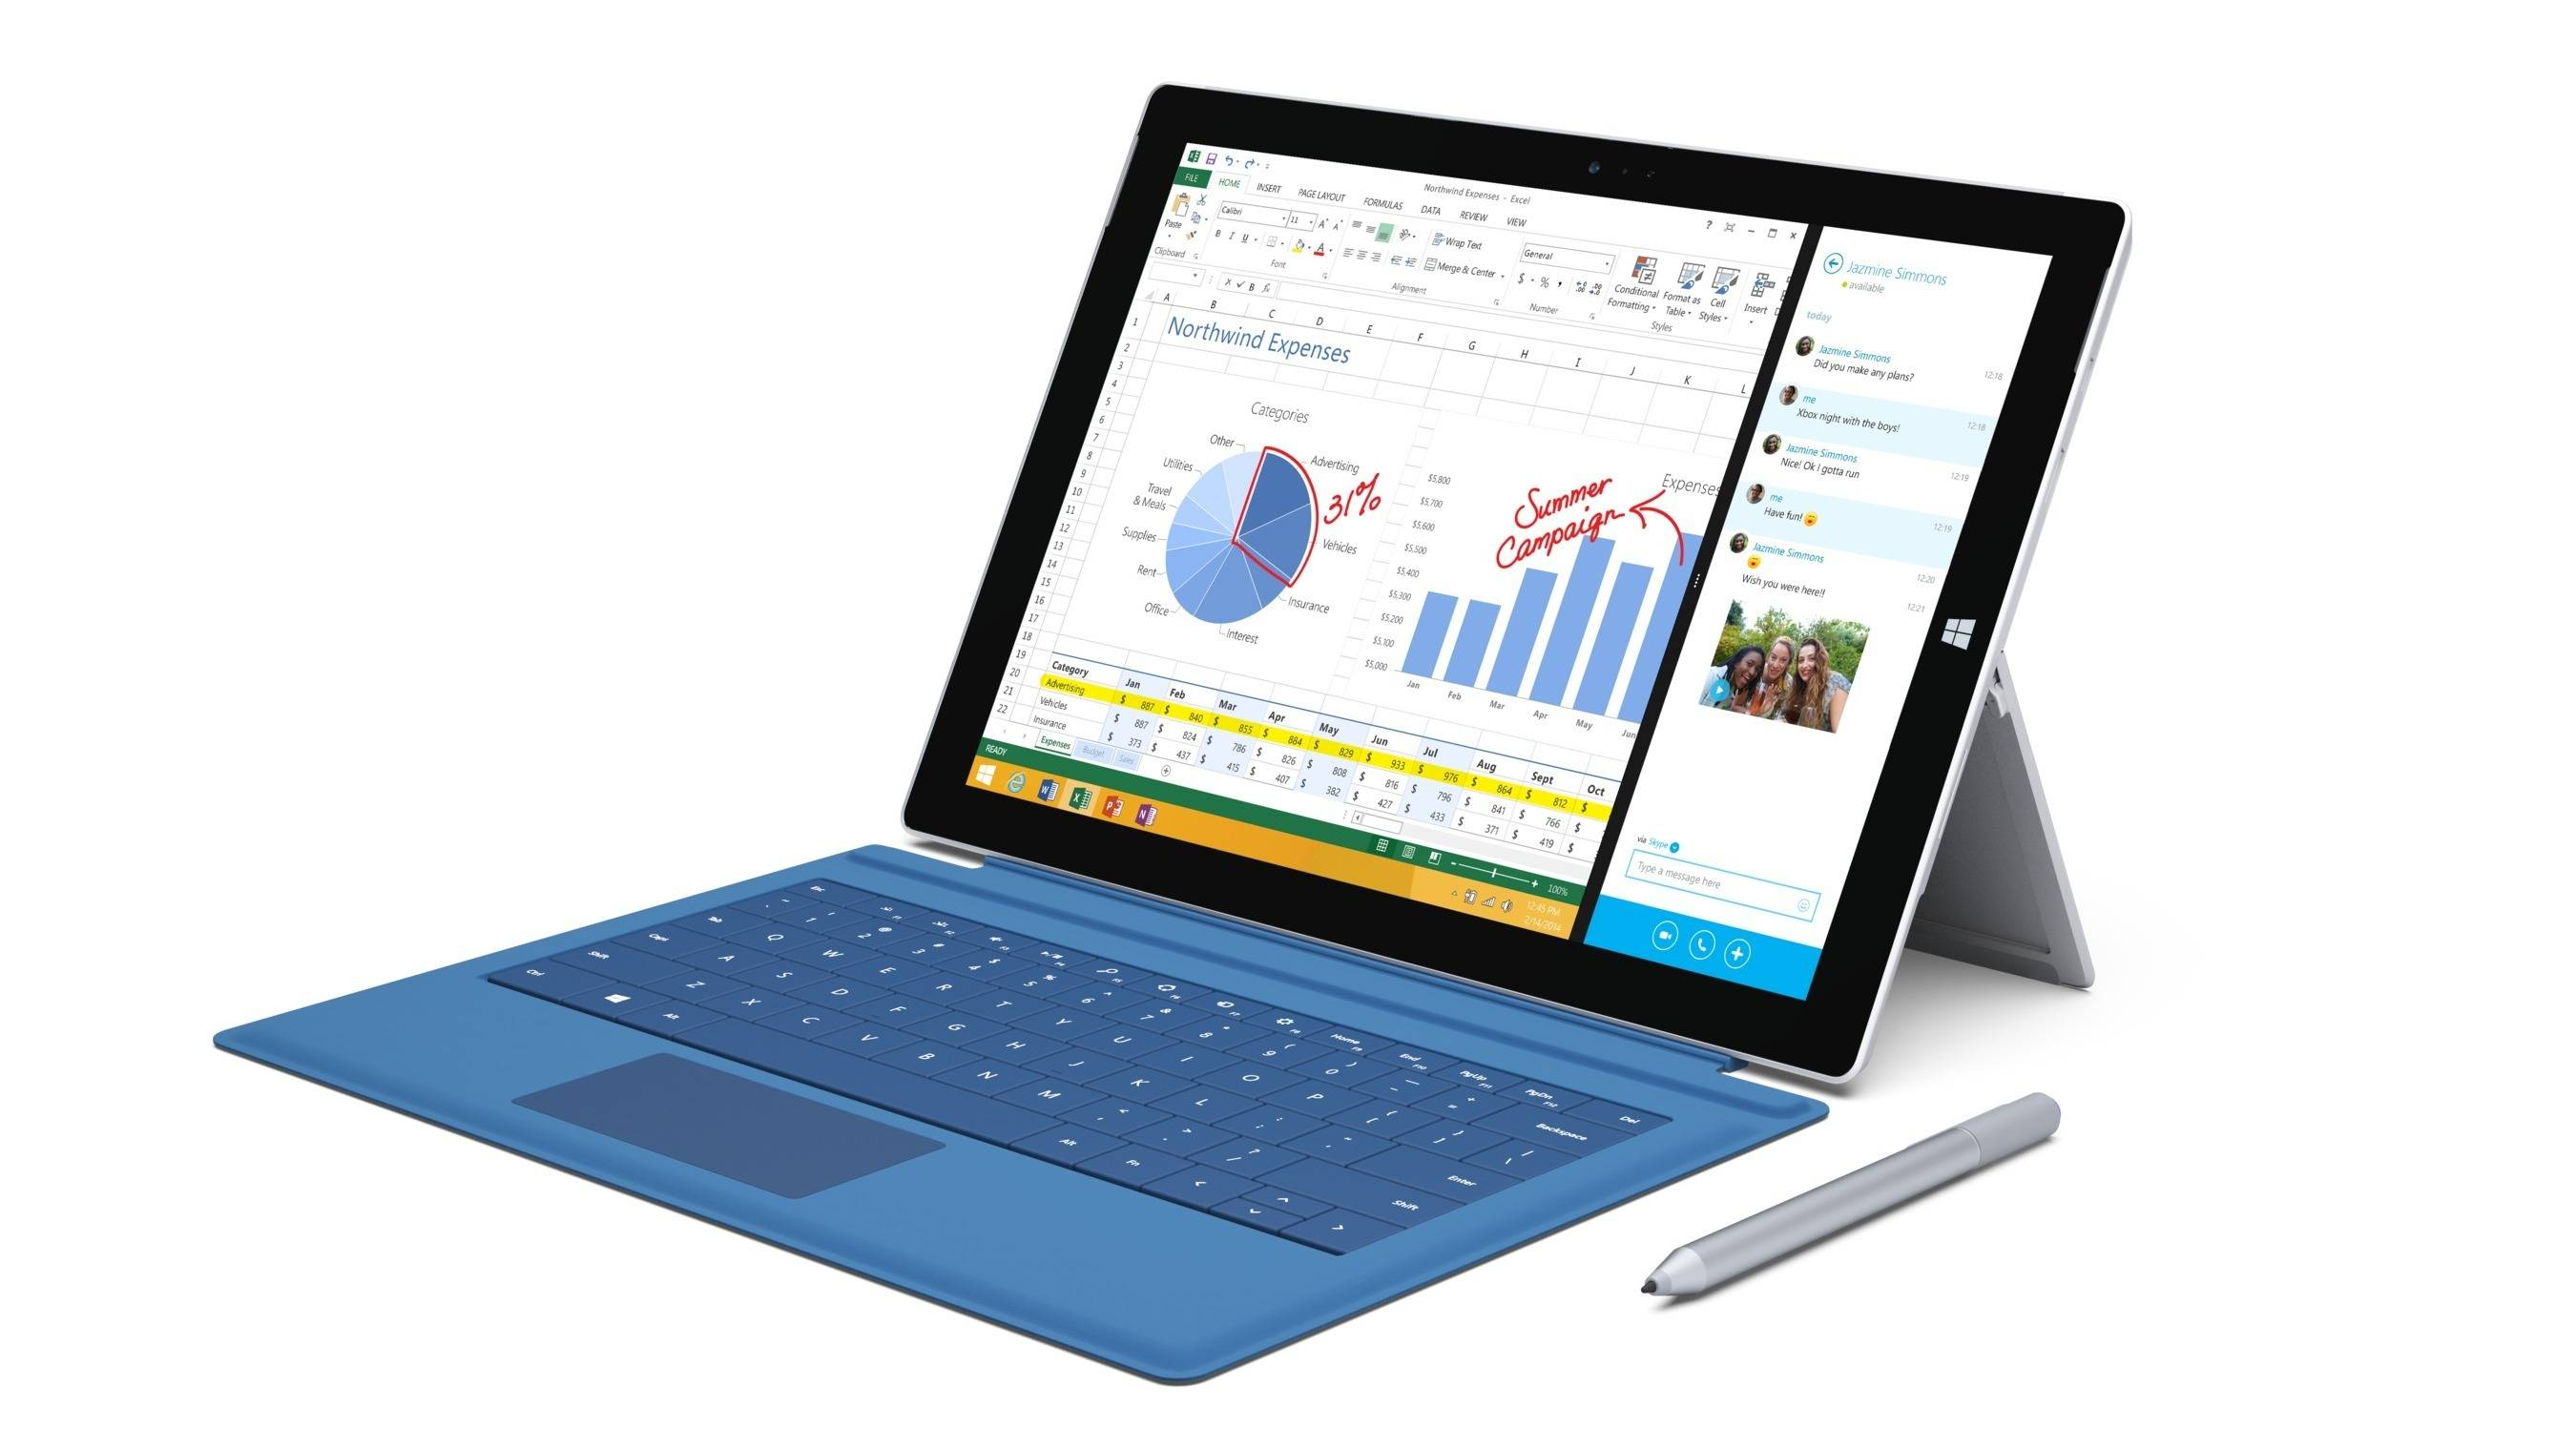 This product image provided by Microsoft shows the Surface Pro 3. The device has a screen measuring 12 inches diagonally, up from 10.6 inches in previous models. Microsoft says it's also thinner and faster than before.